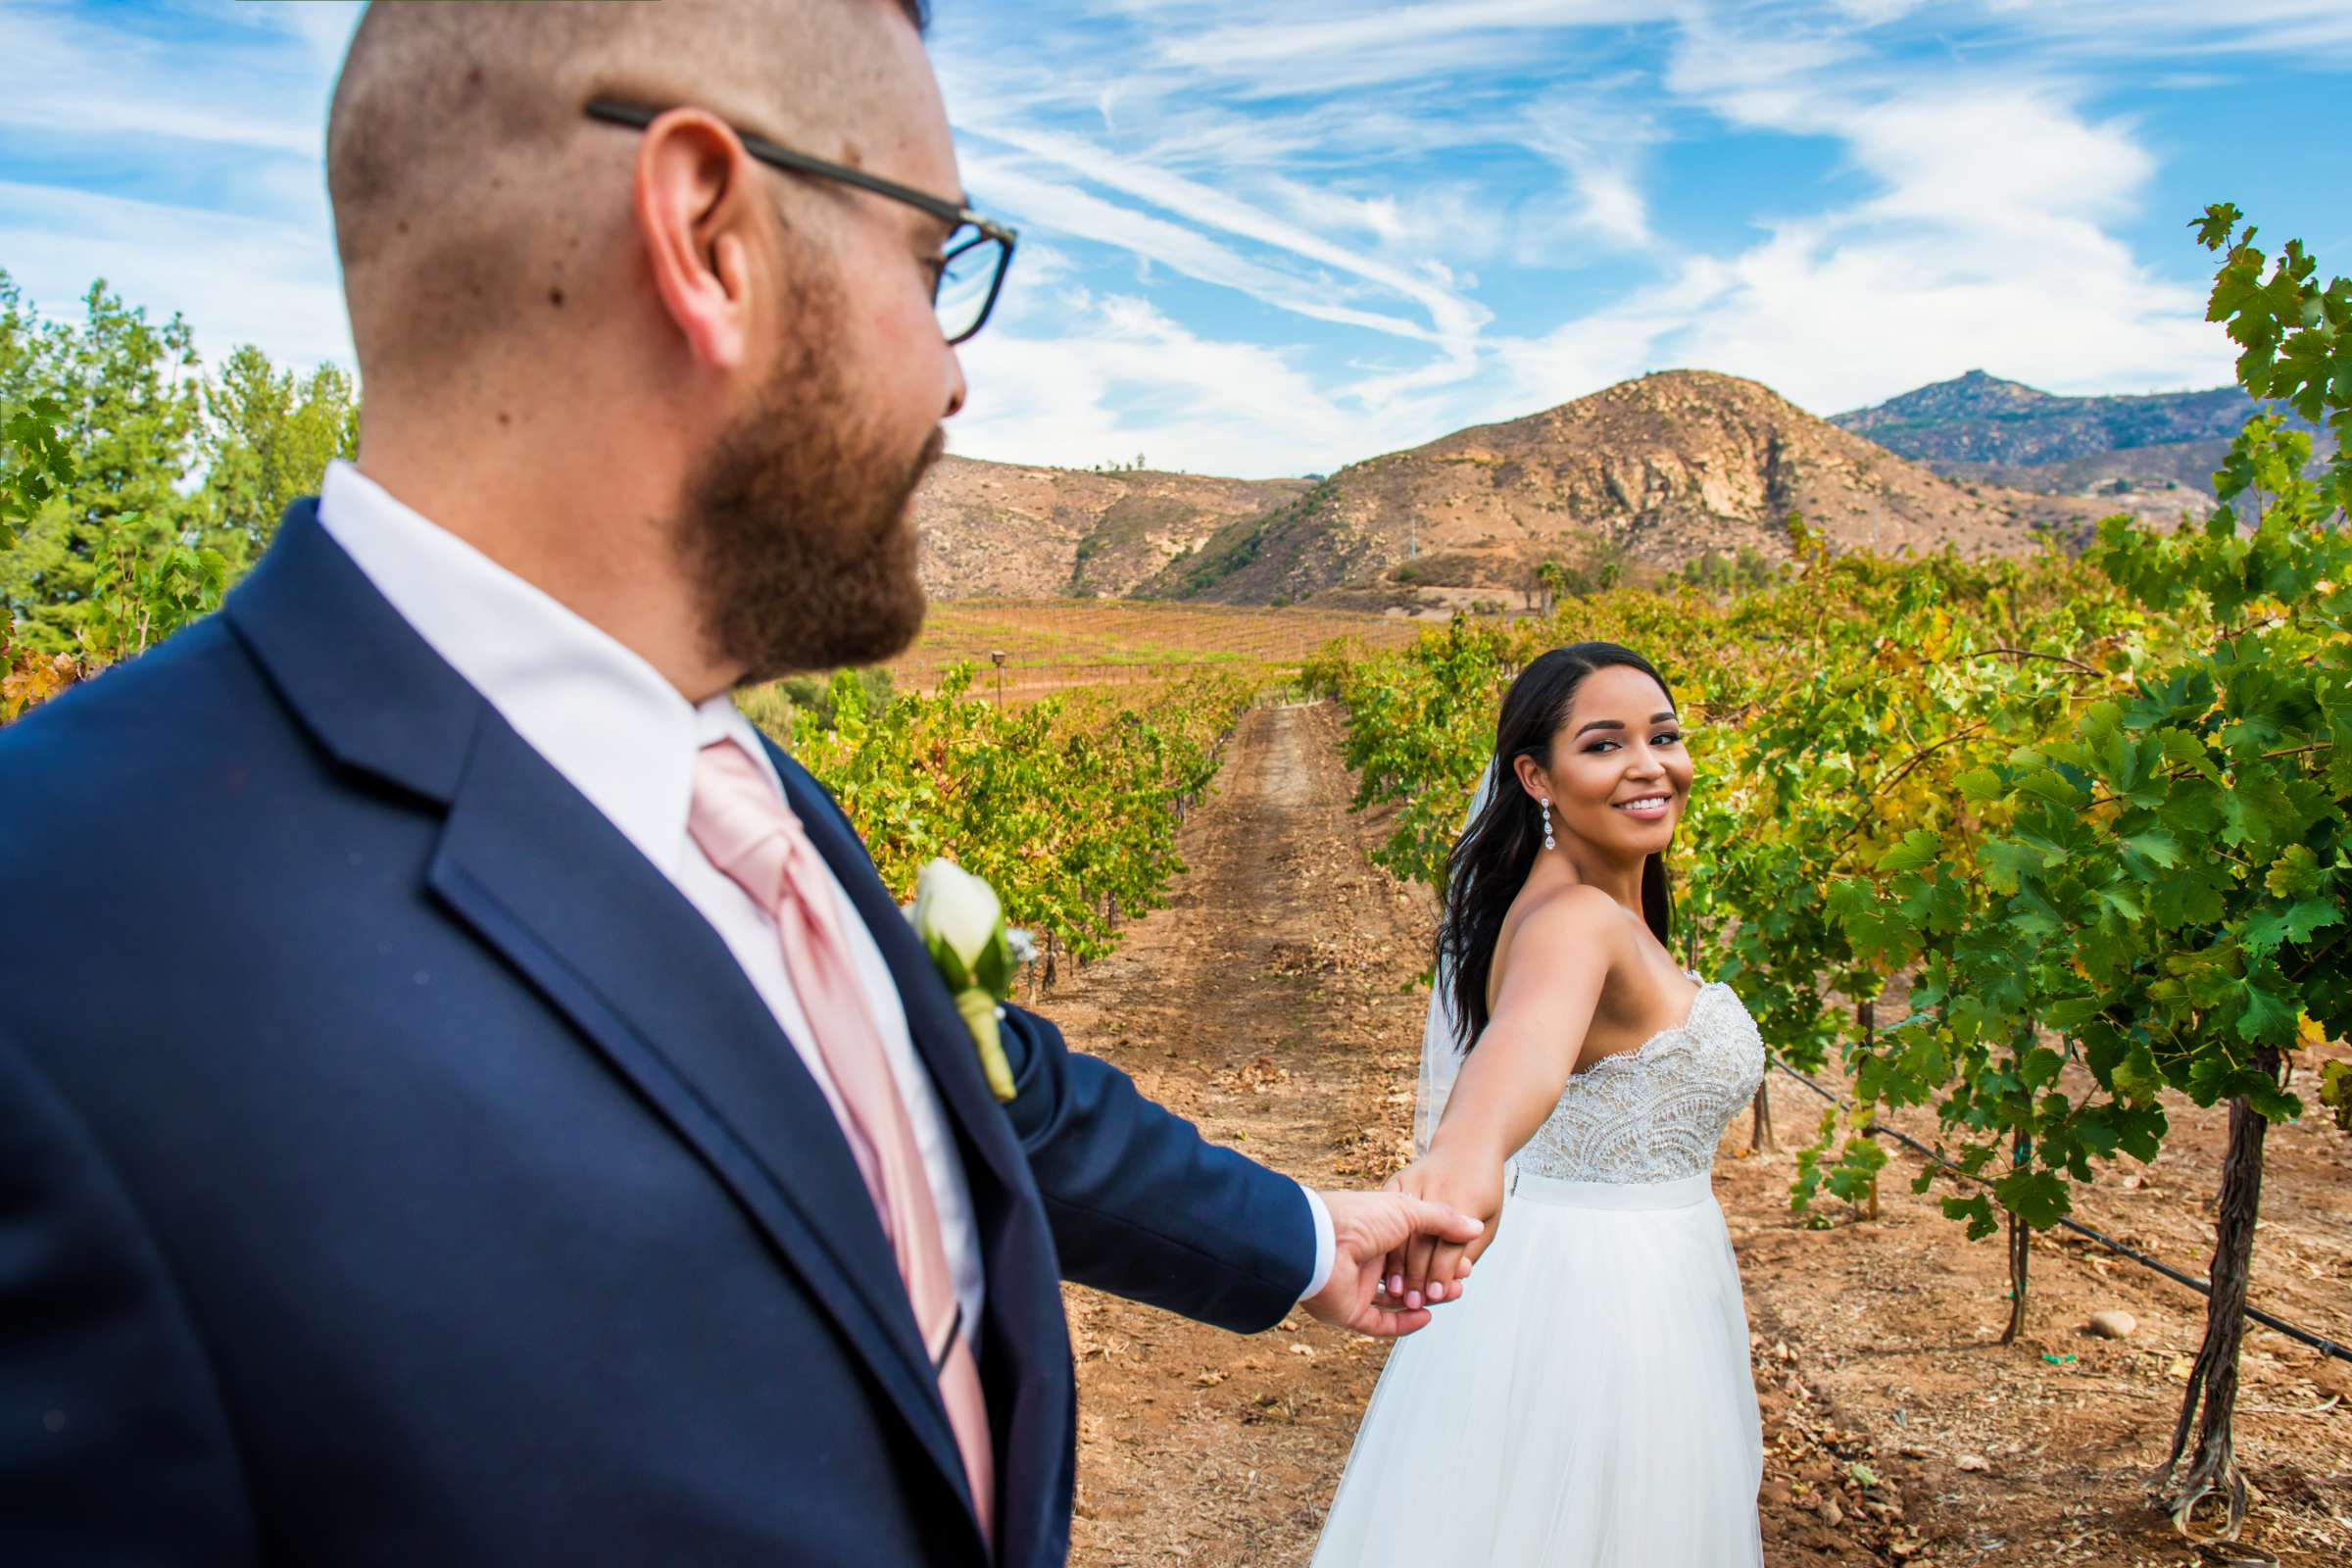 Orfila Vineyards Wedding, Holly and Andrew Wedding Photo #289551 by True Photography